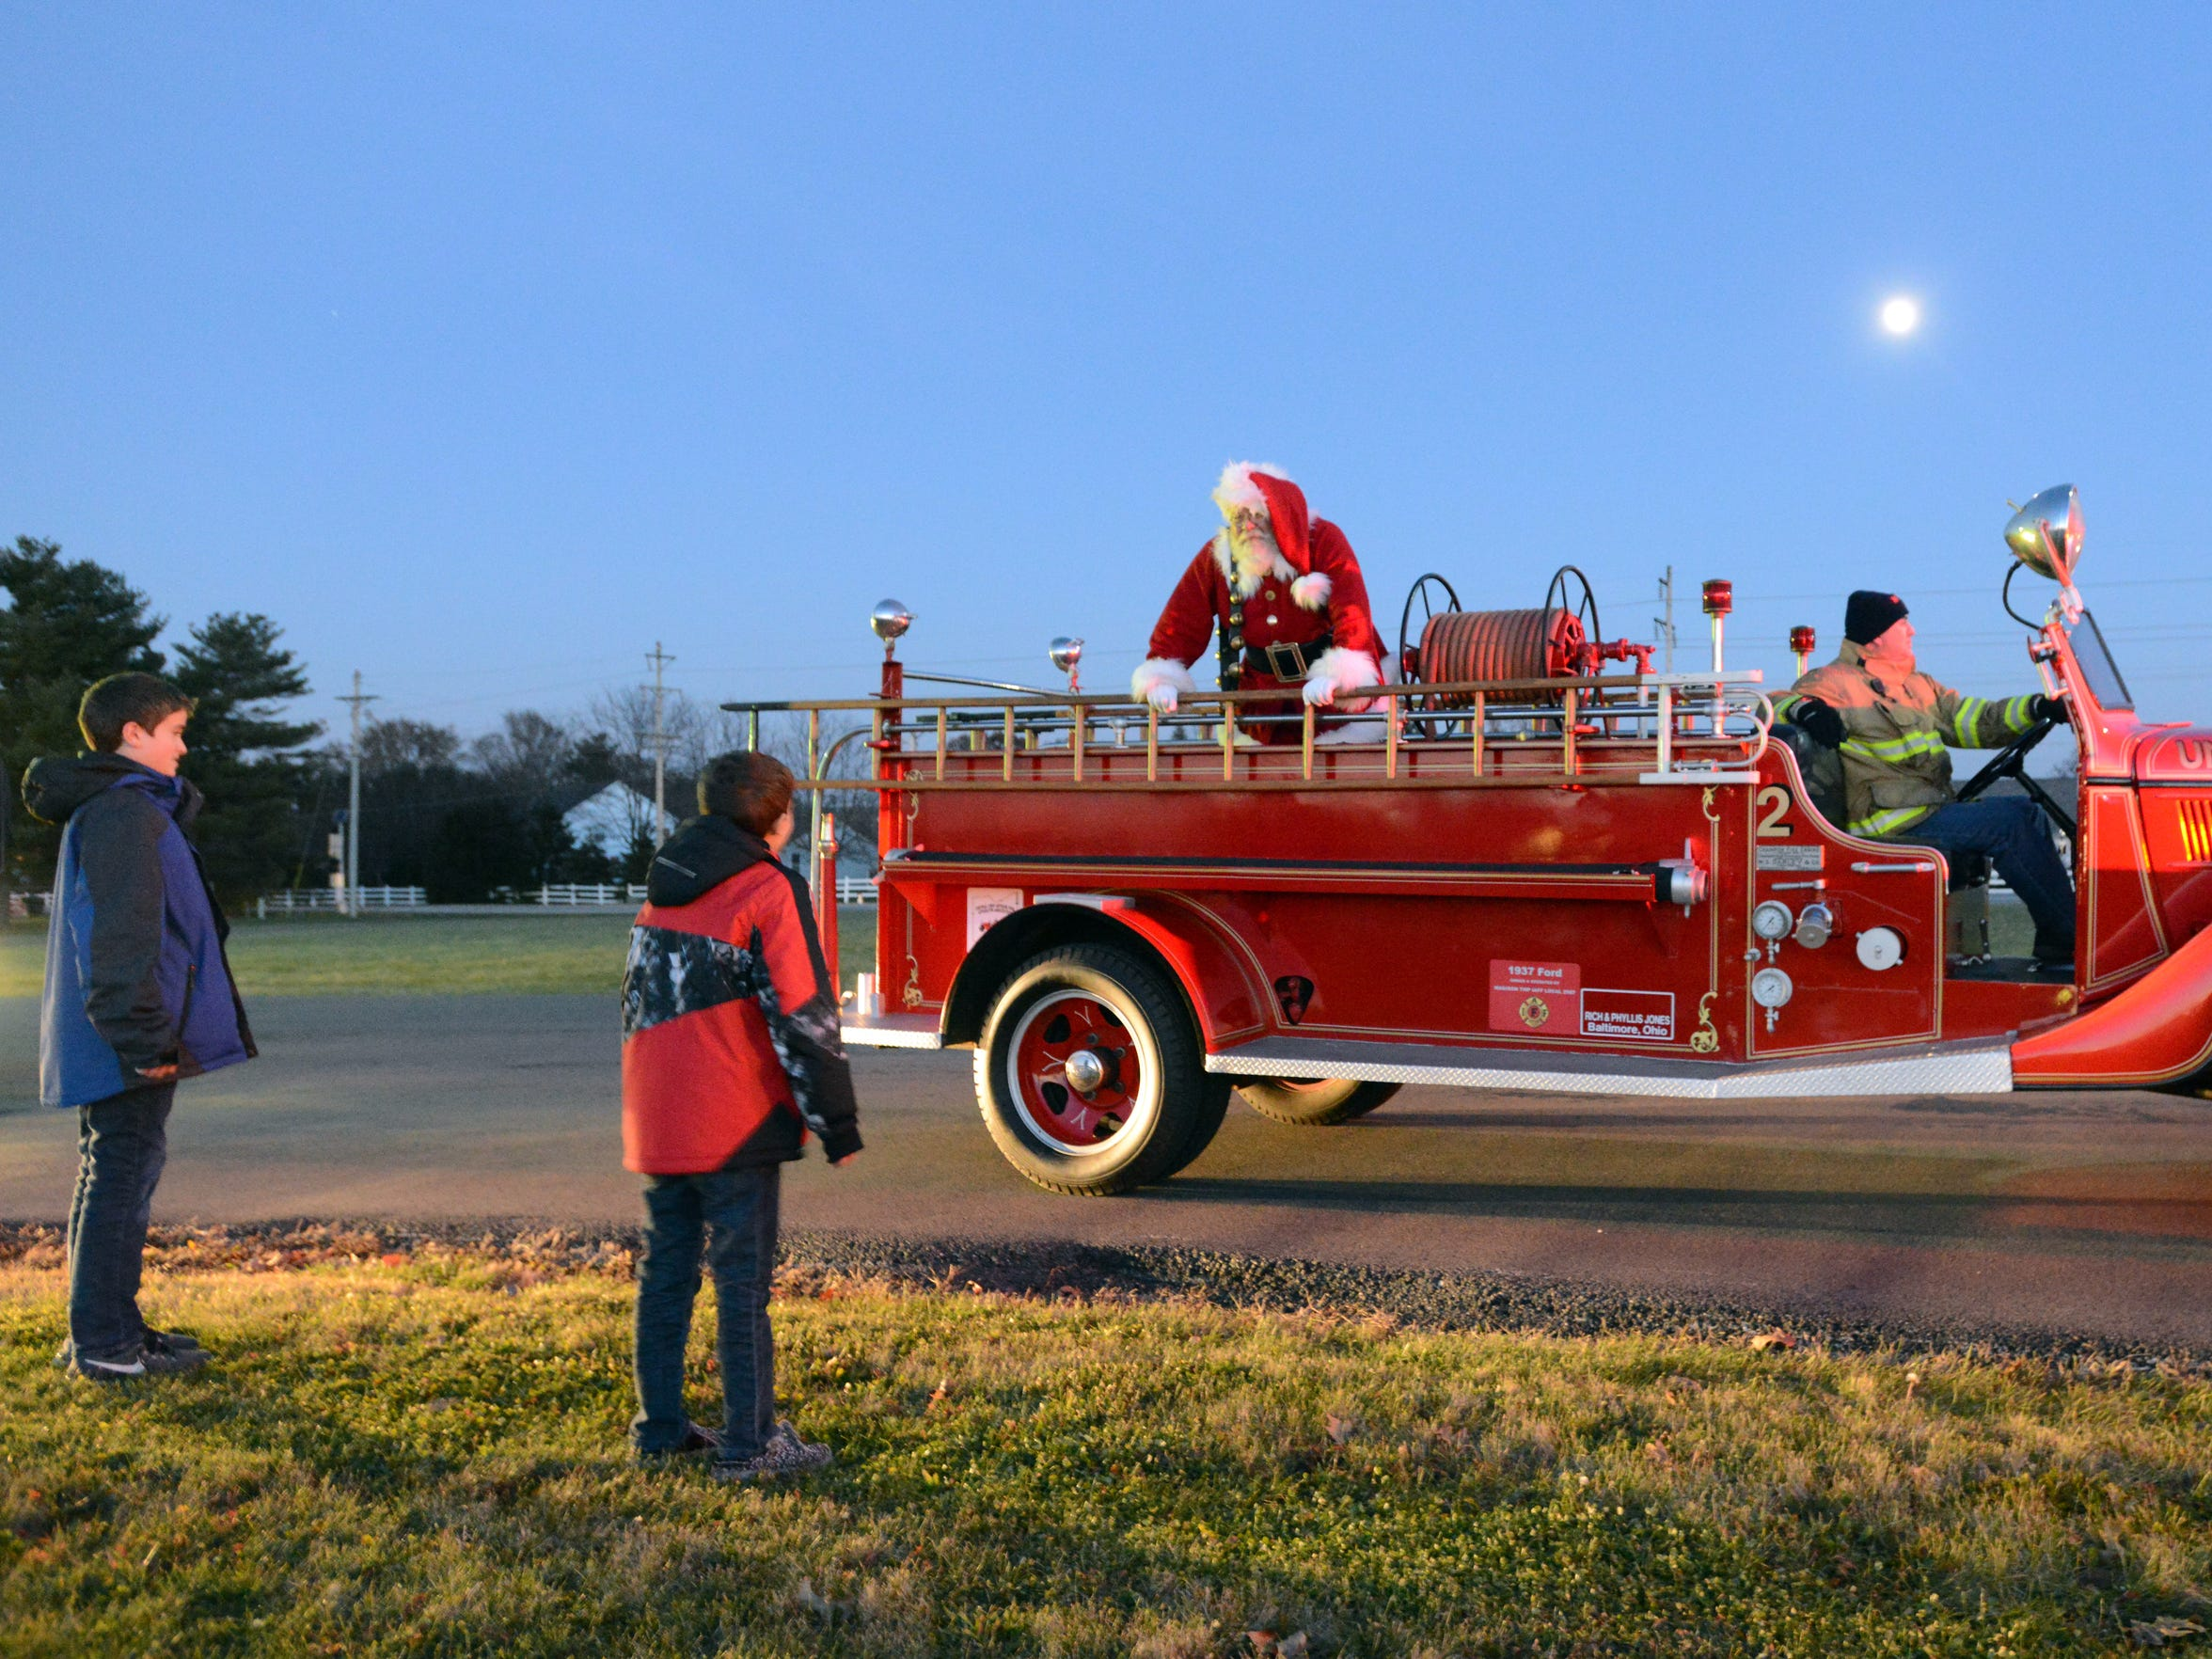 Tim Etienne talks to two children as he stands in the back of an antique fire truck